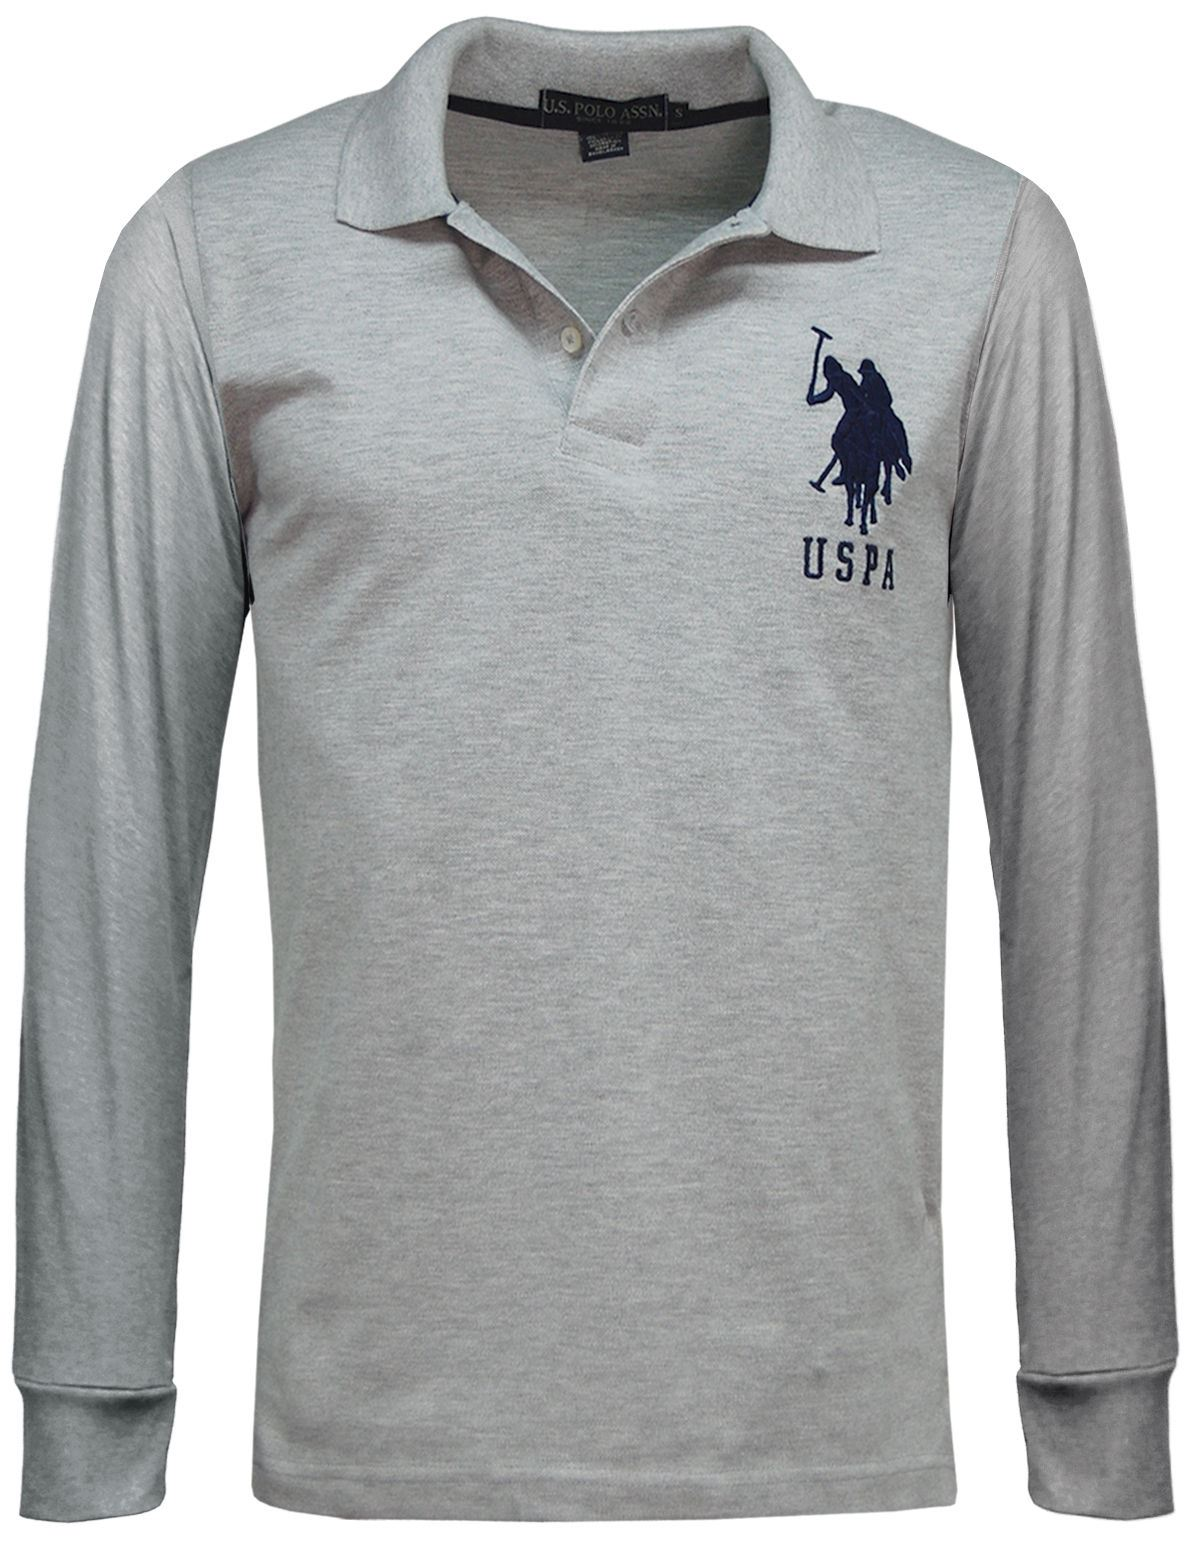 Us polo assn branded mens long sleeve polo shirts pique for Branded polo t shirts